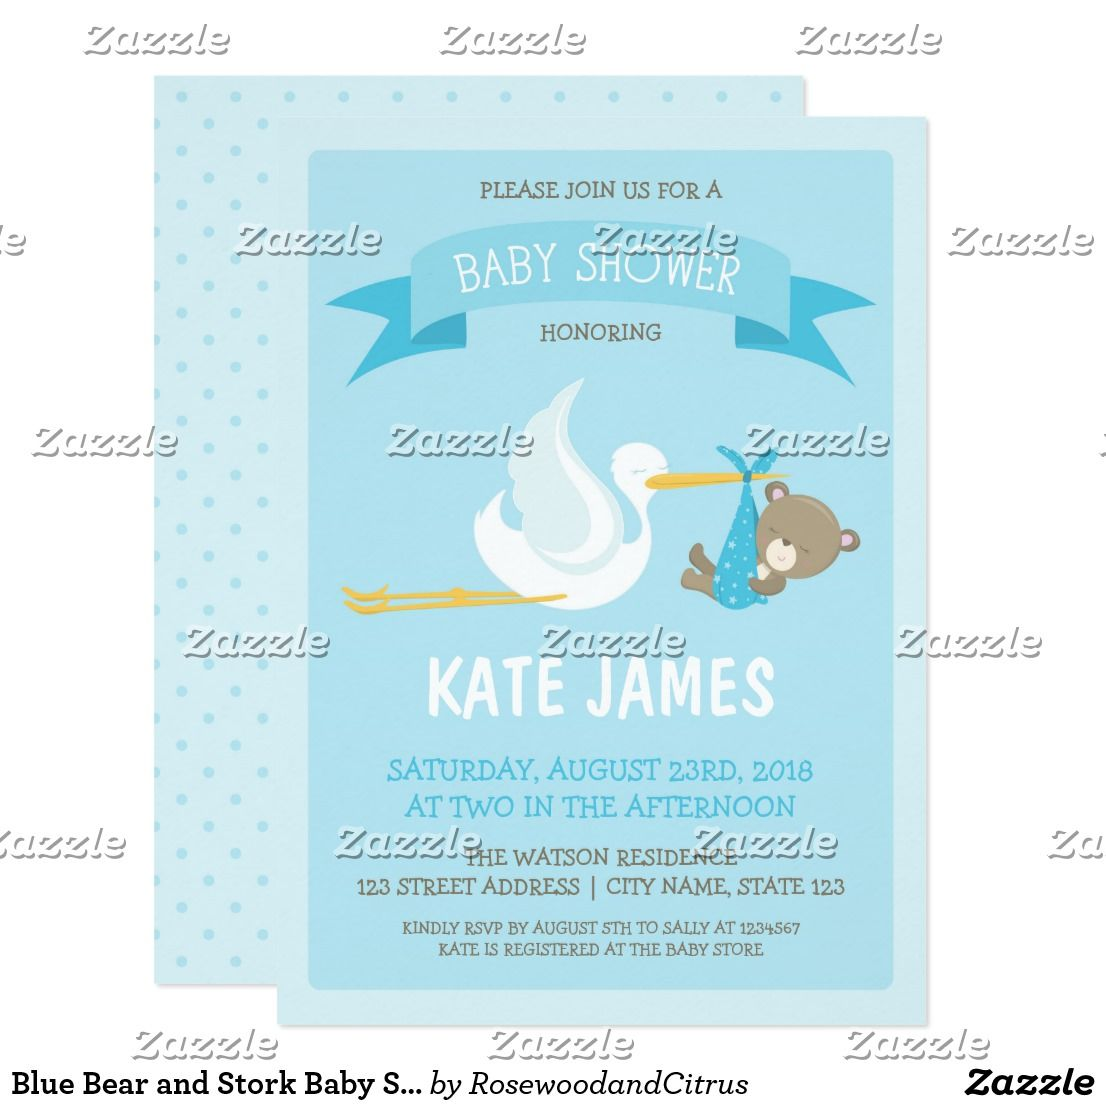 Blue Bear and Stork Baby Shower Invitation Adorable Blue Baby Shower ...